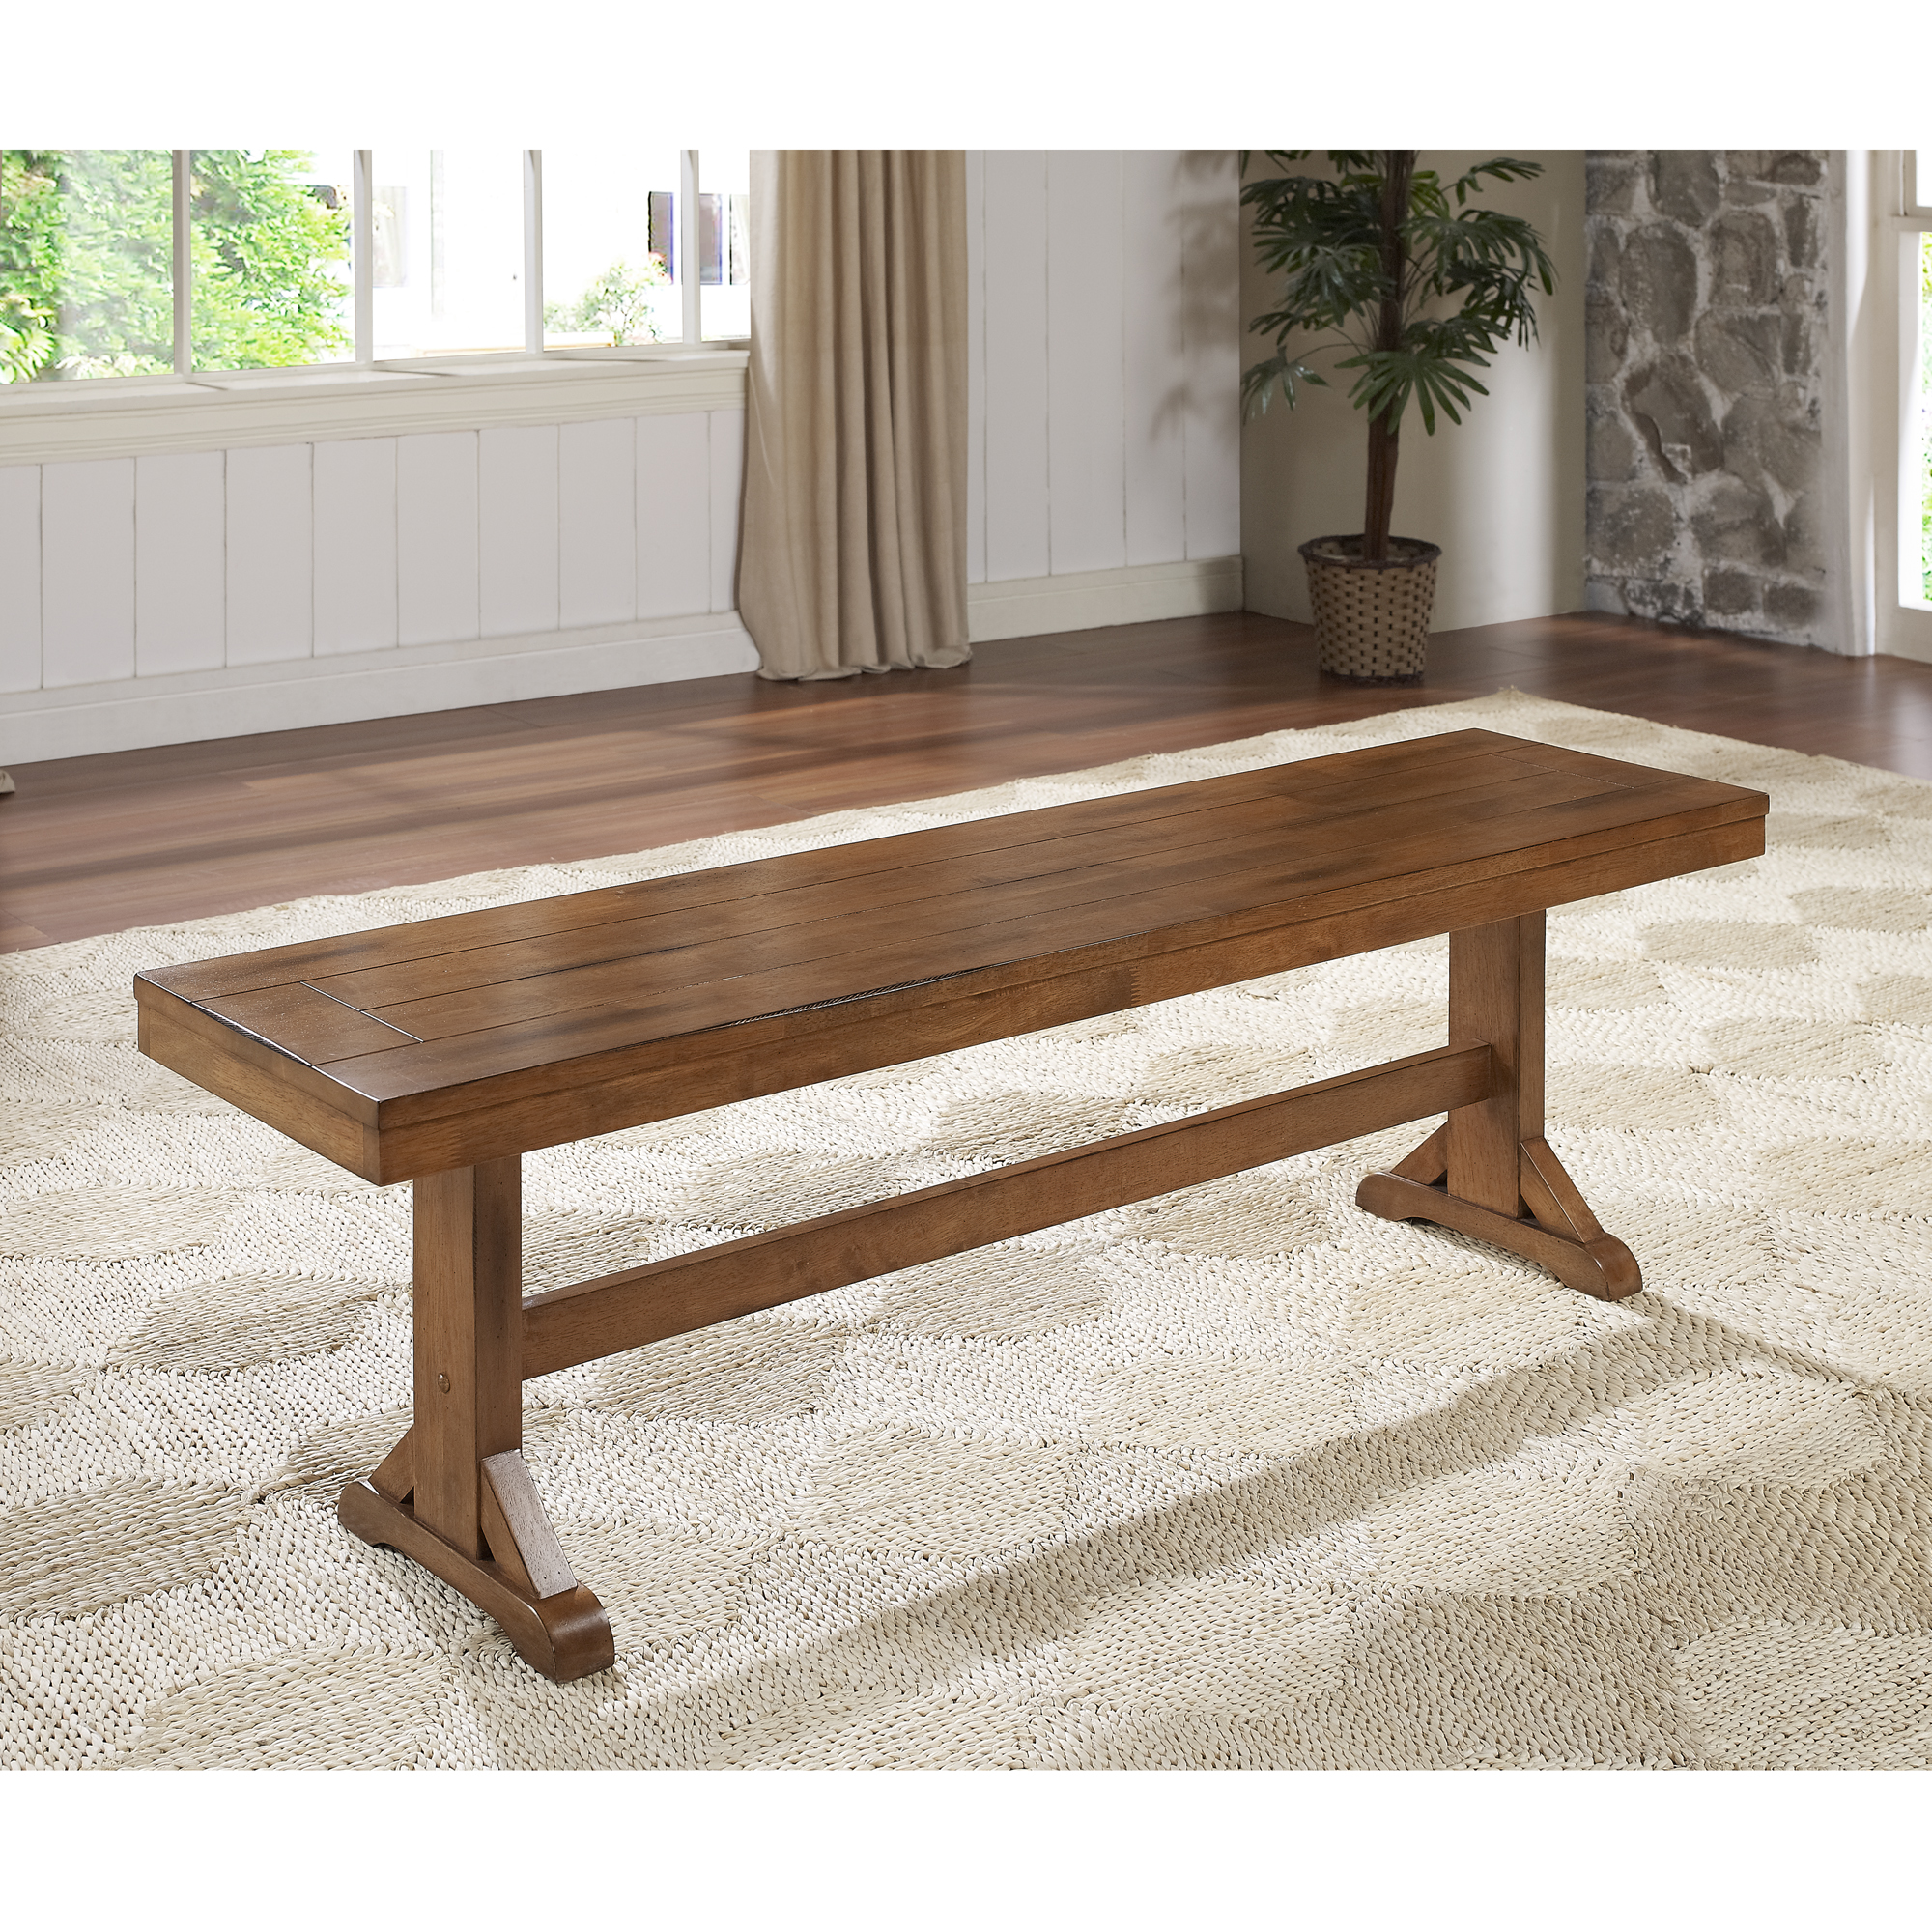 "60"" Wood Dining Kitchen Bench"